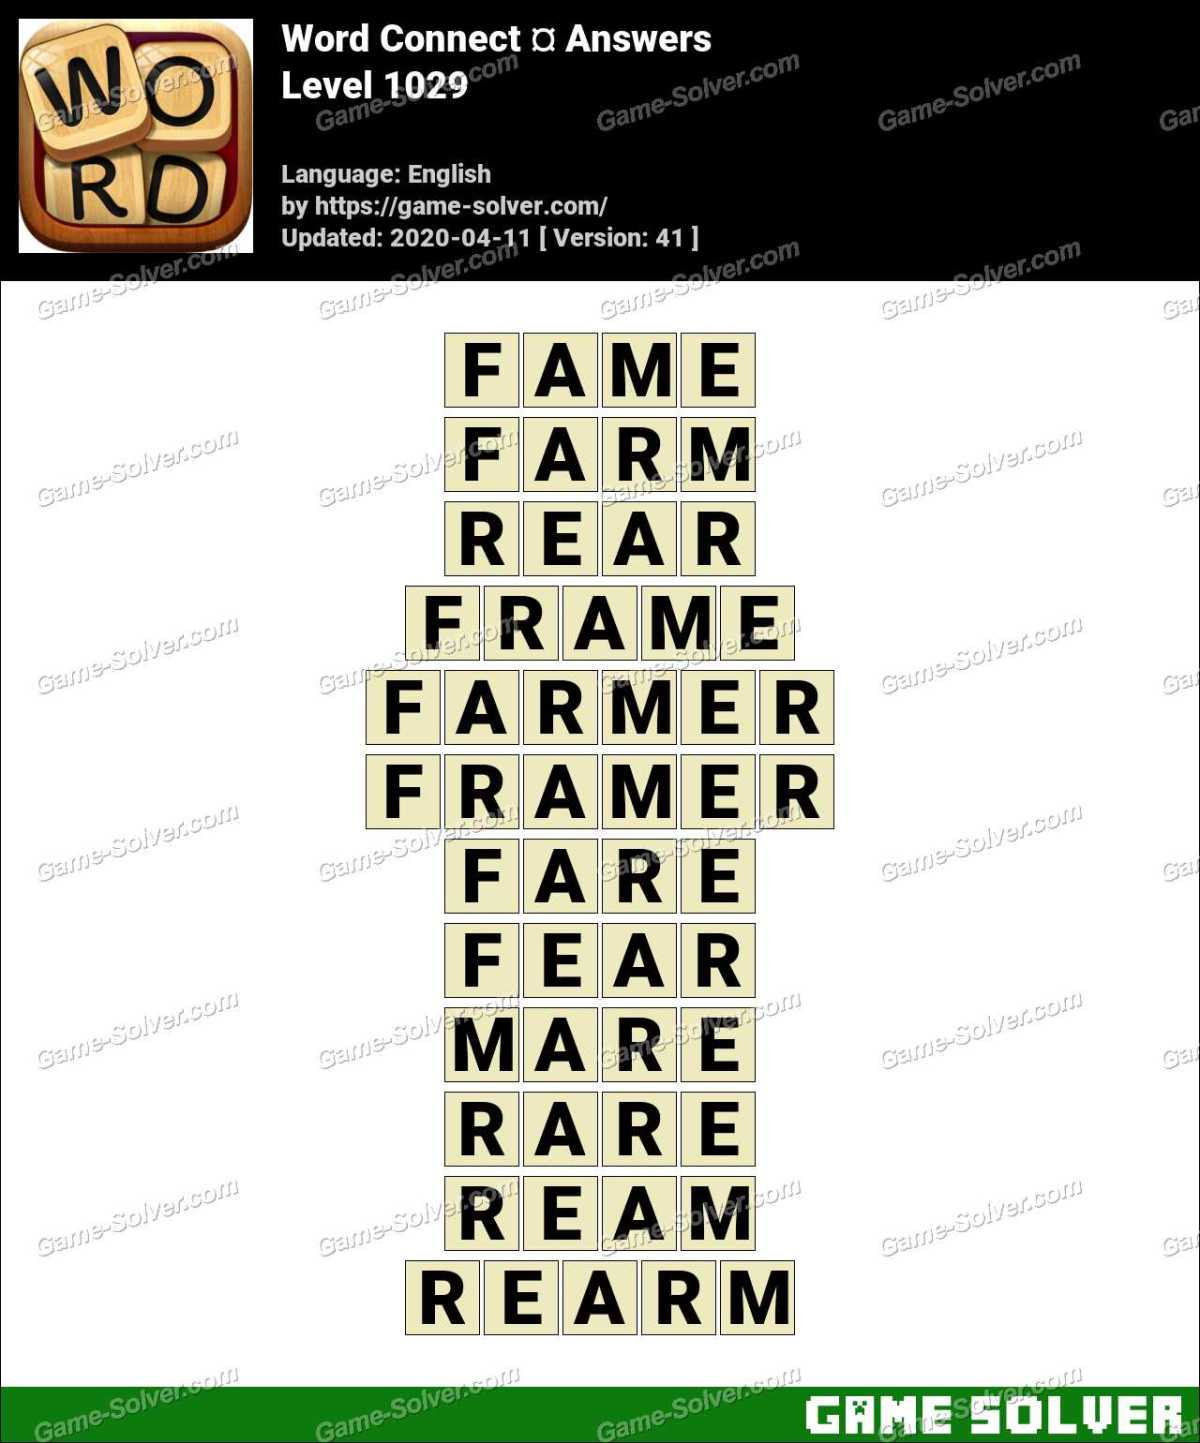 Word Connect Level 1029 Answers